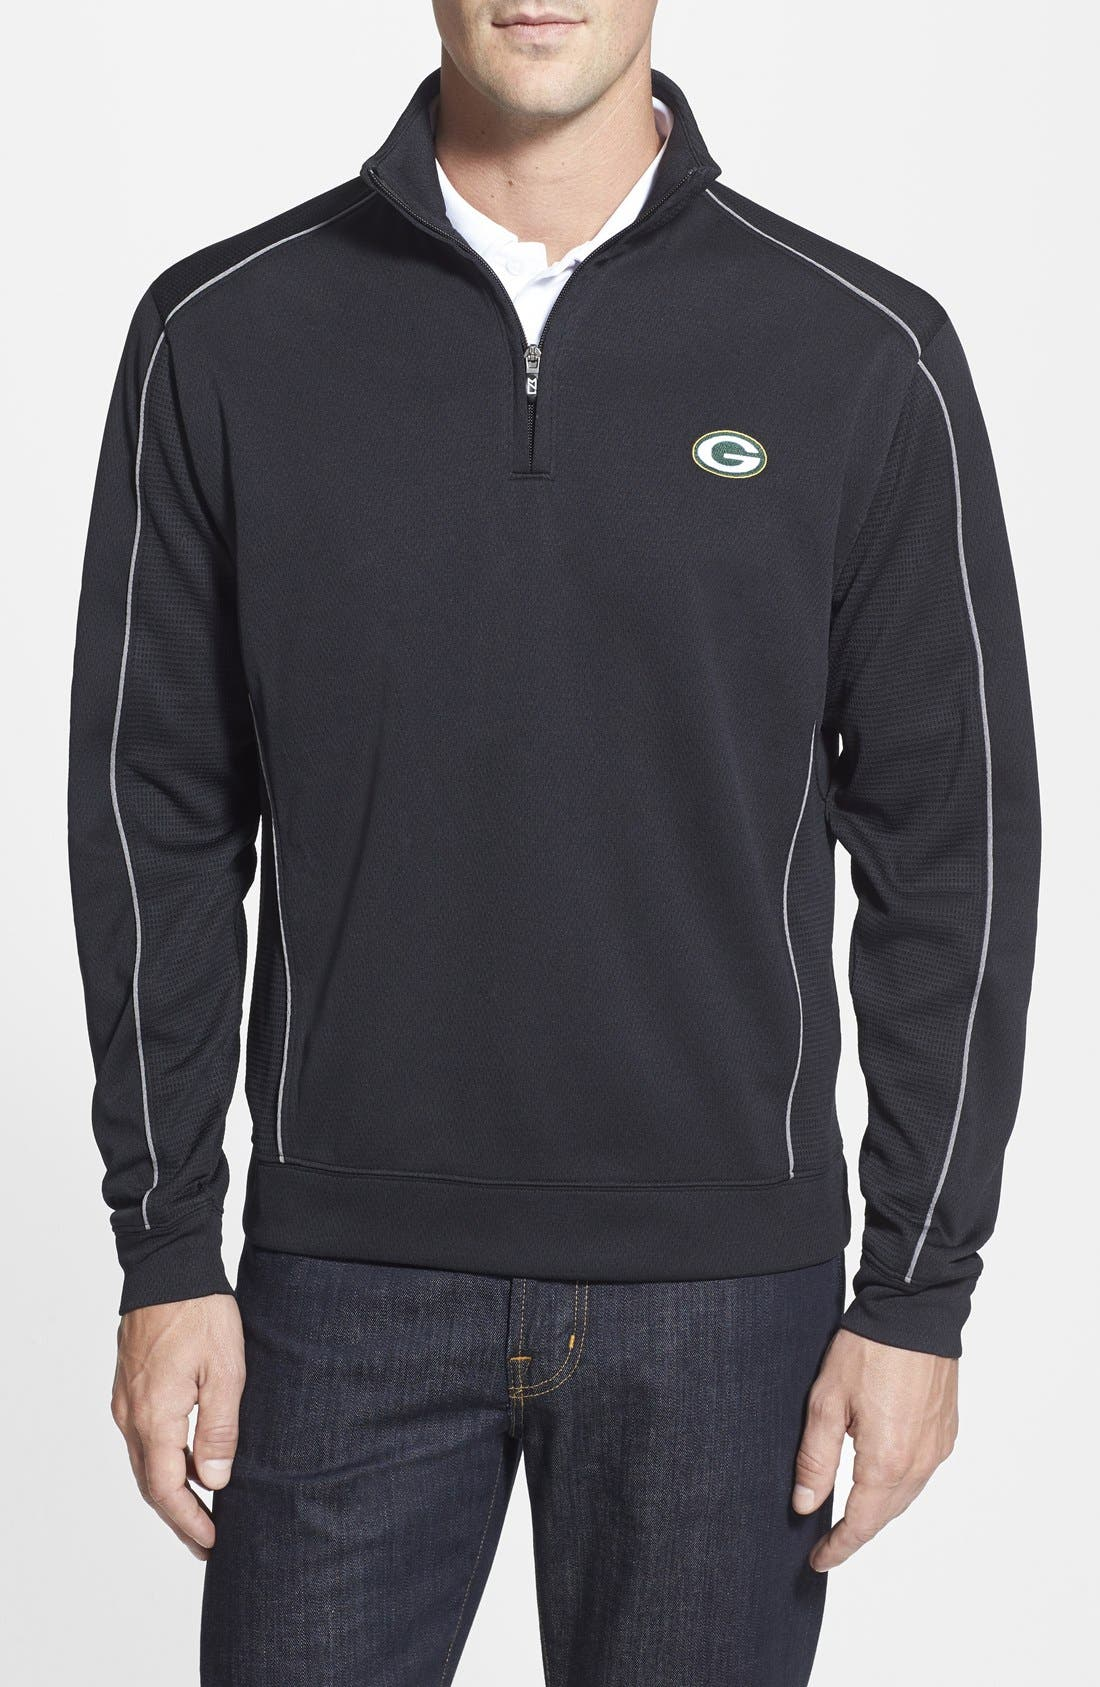 Green Bay Packers - Edge DryTec Moisture Wicking Half Zip Pullover,                             Main thumbnail 1, color,                             001